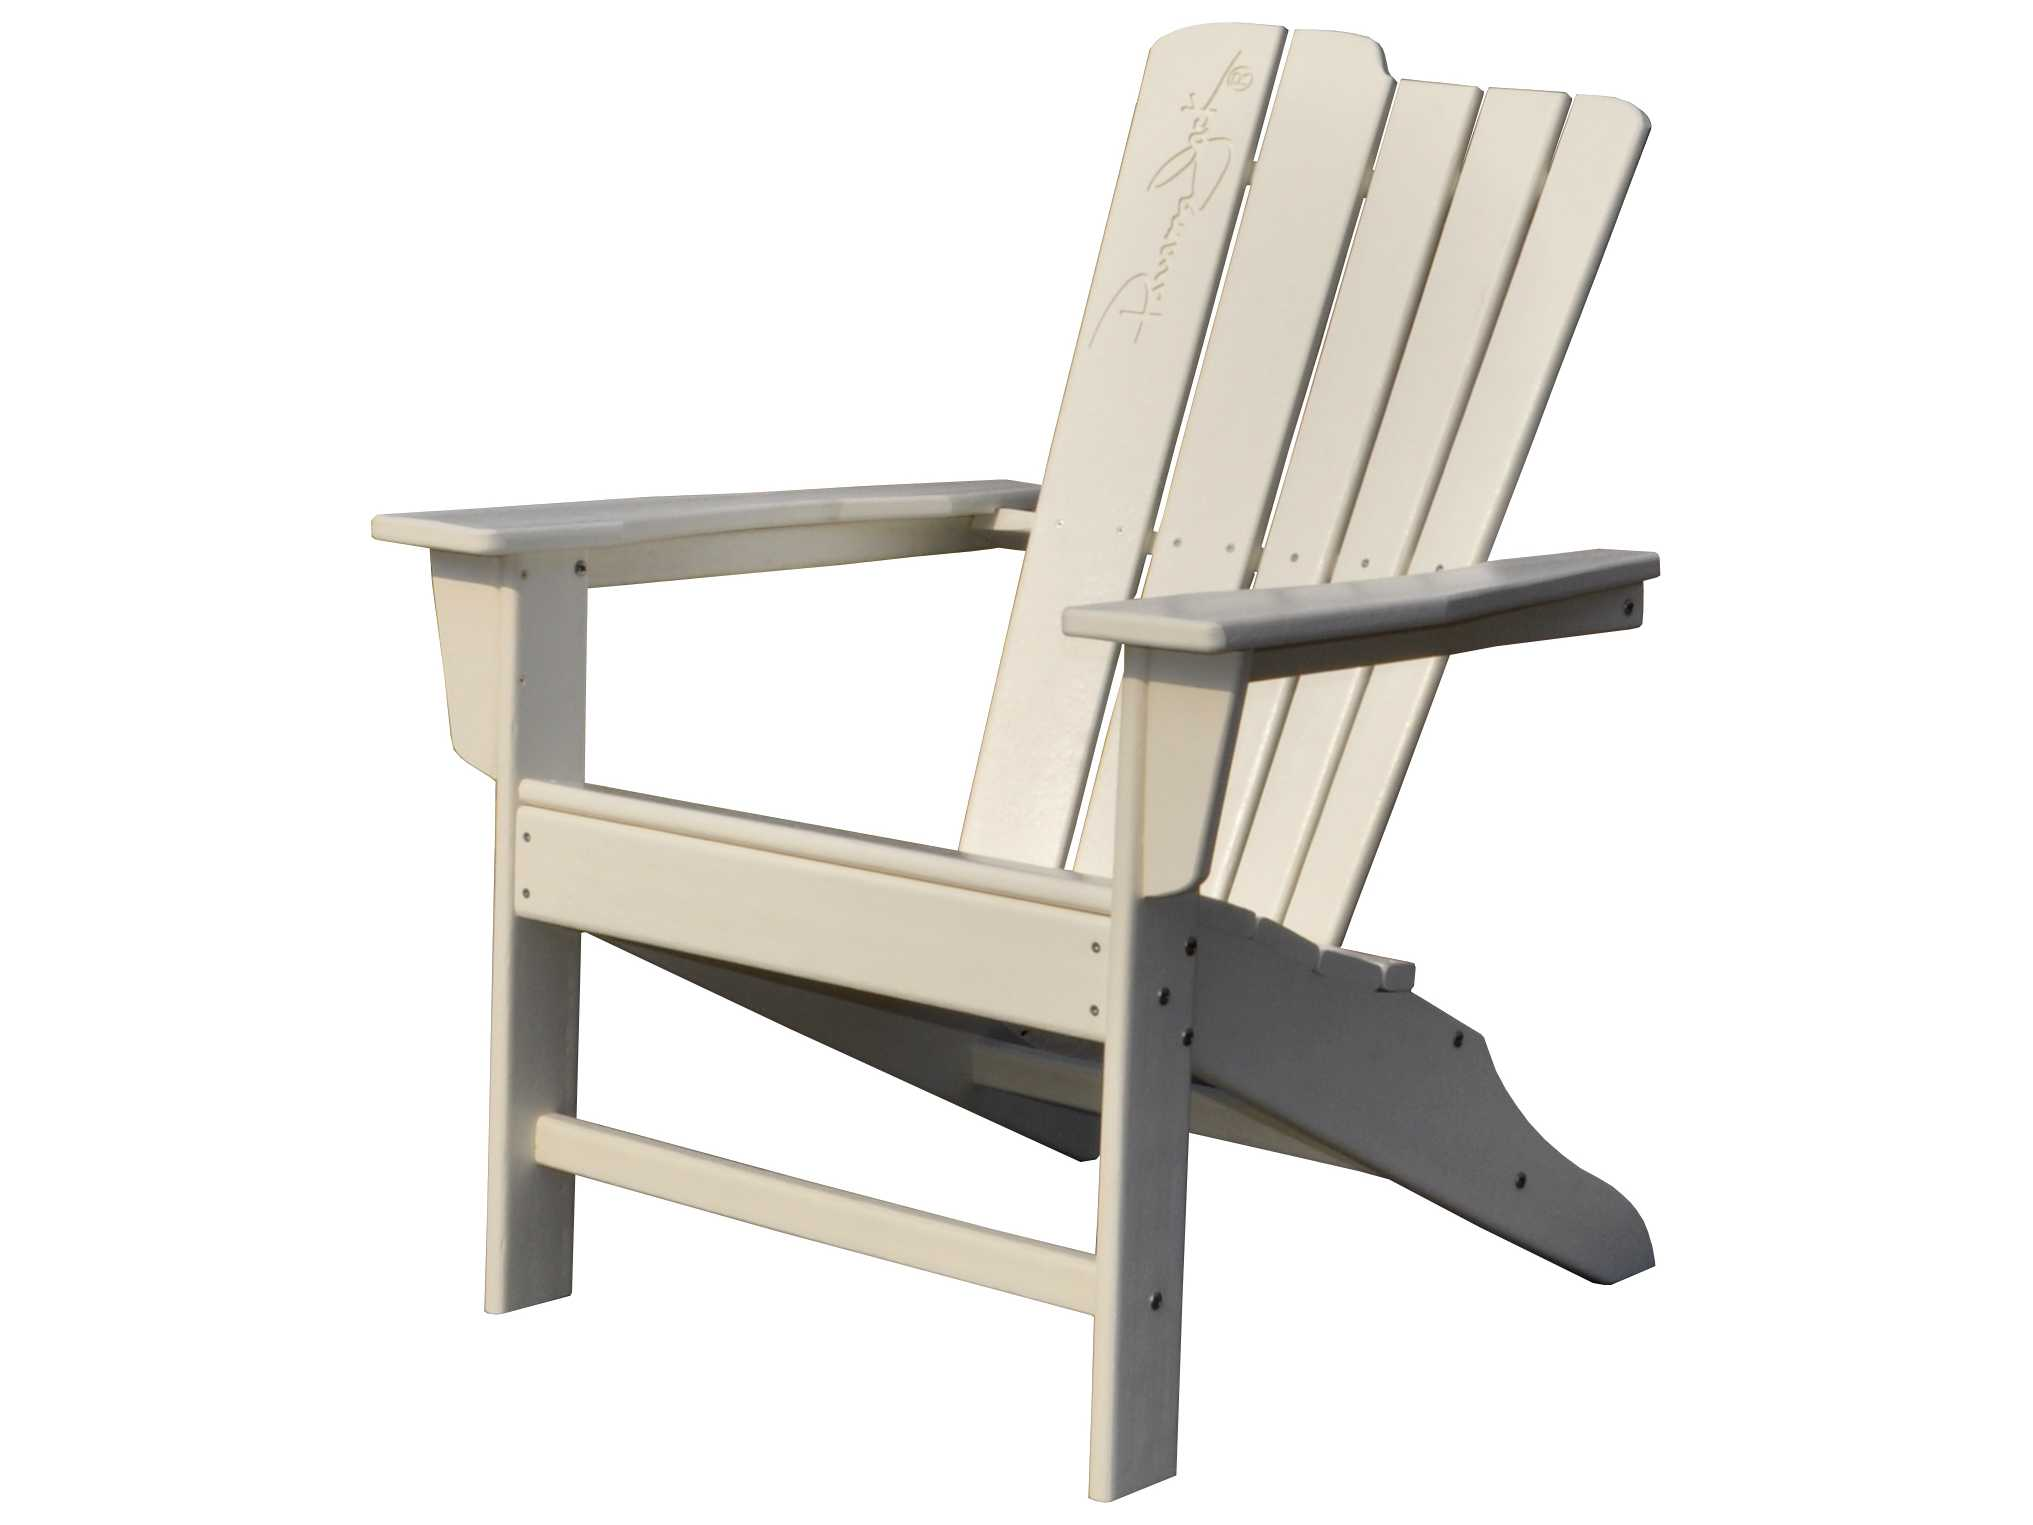 Panama Jack Adirondack Resin White Adirondack Resin Chair